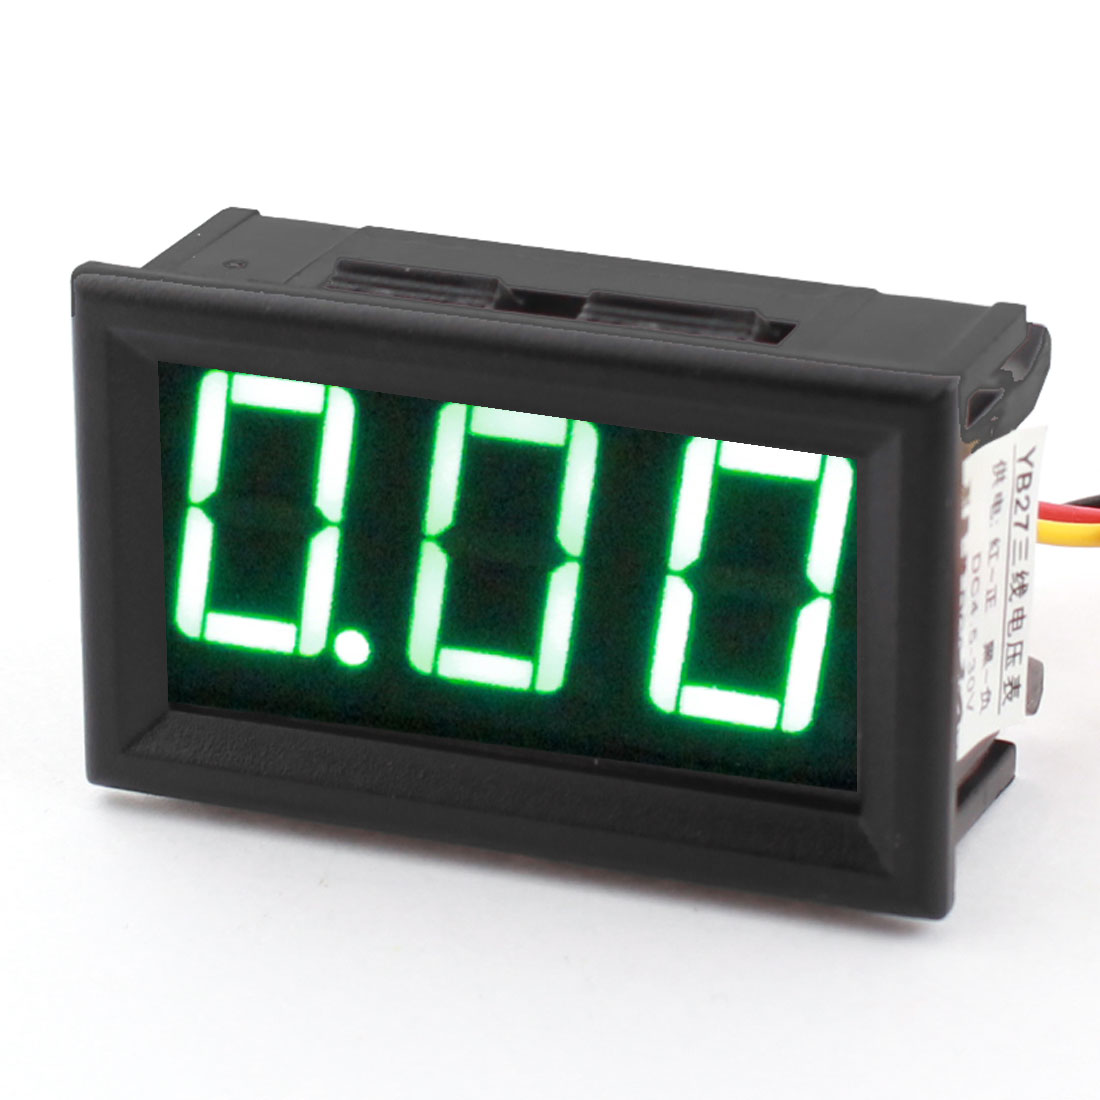 Digital DC 4.5-30V LED Display Green Digit Voltage Tester Gauge Panel Voltmeter